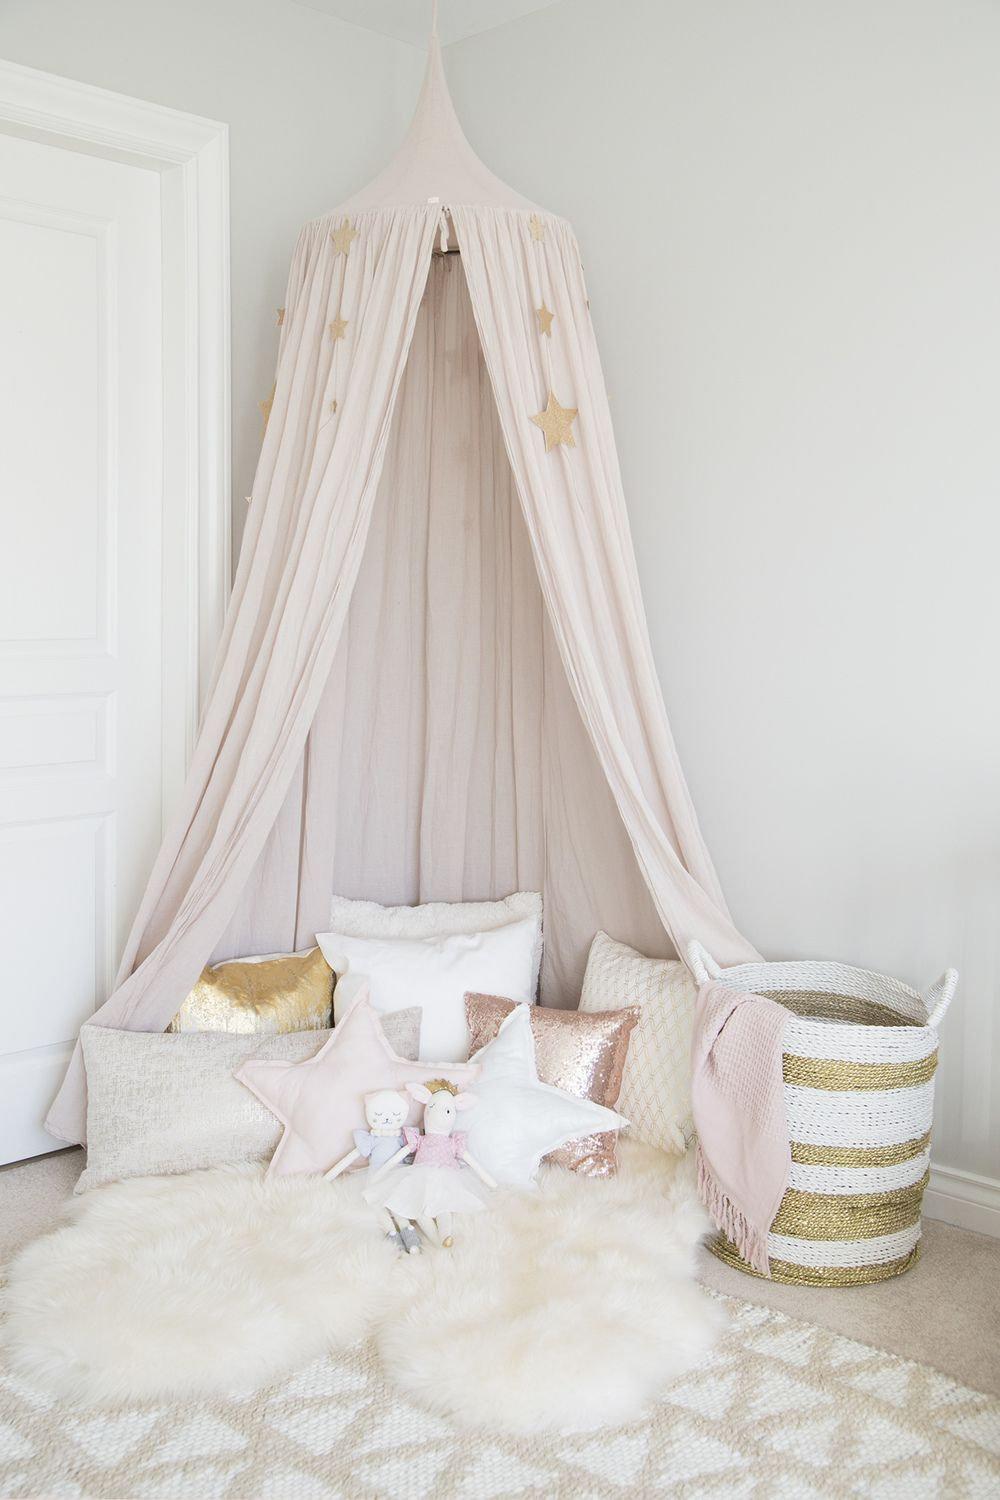 CANOPIES FOR KIDS! & WINTER DAISY PICKS...CANOPIES FOR KIDS! | Canopy Girls room ...